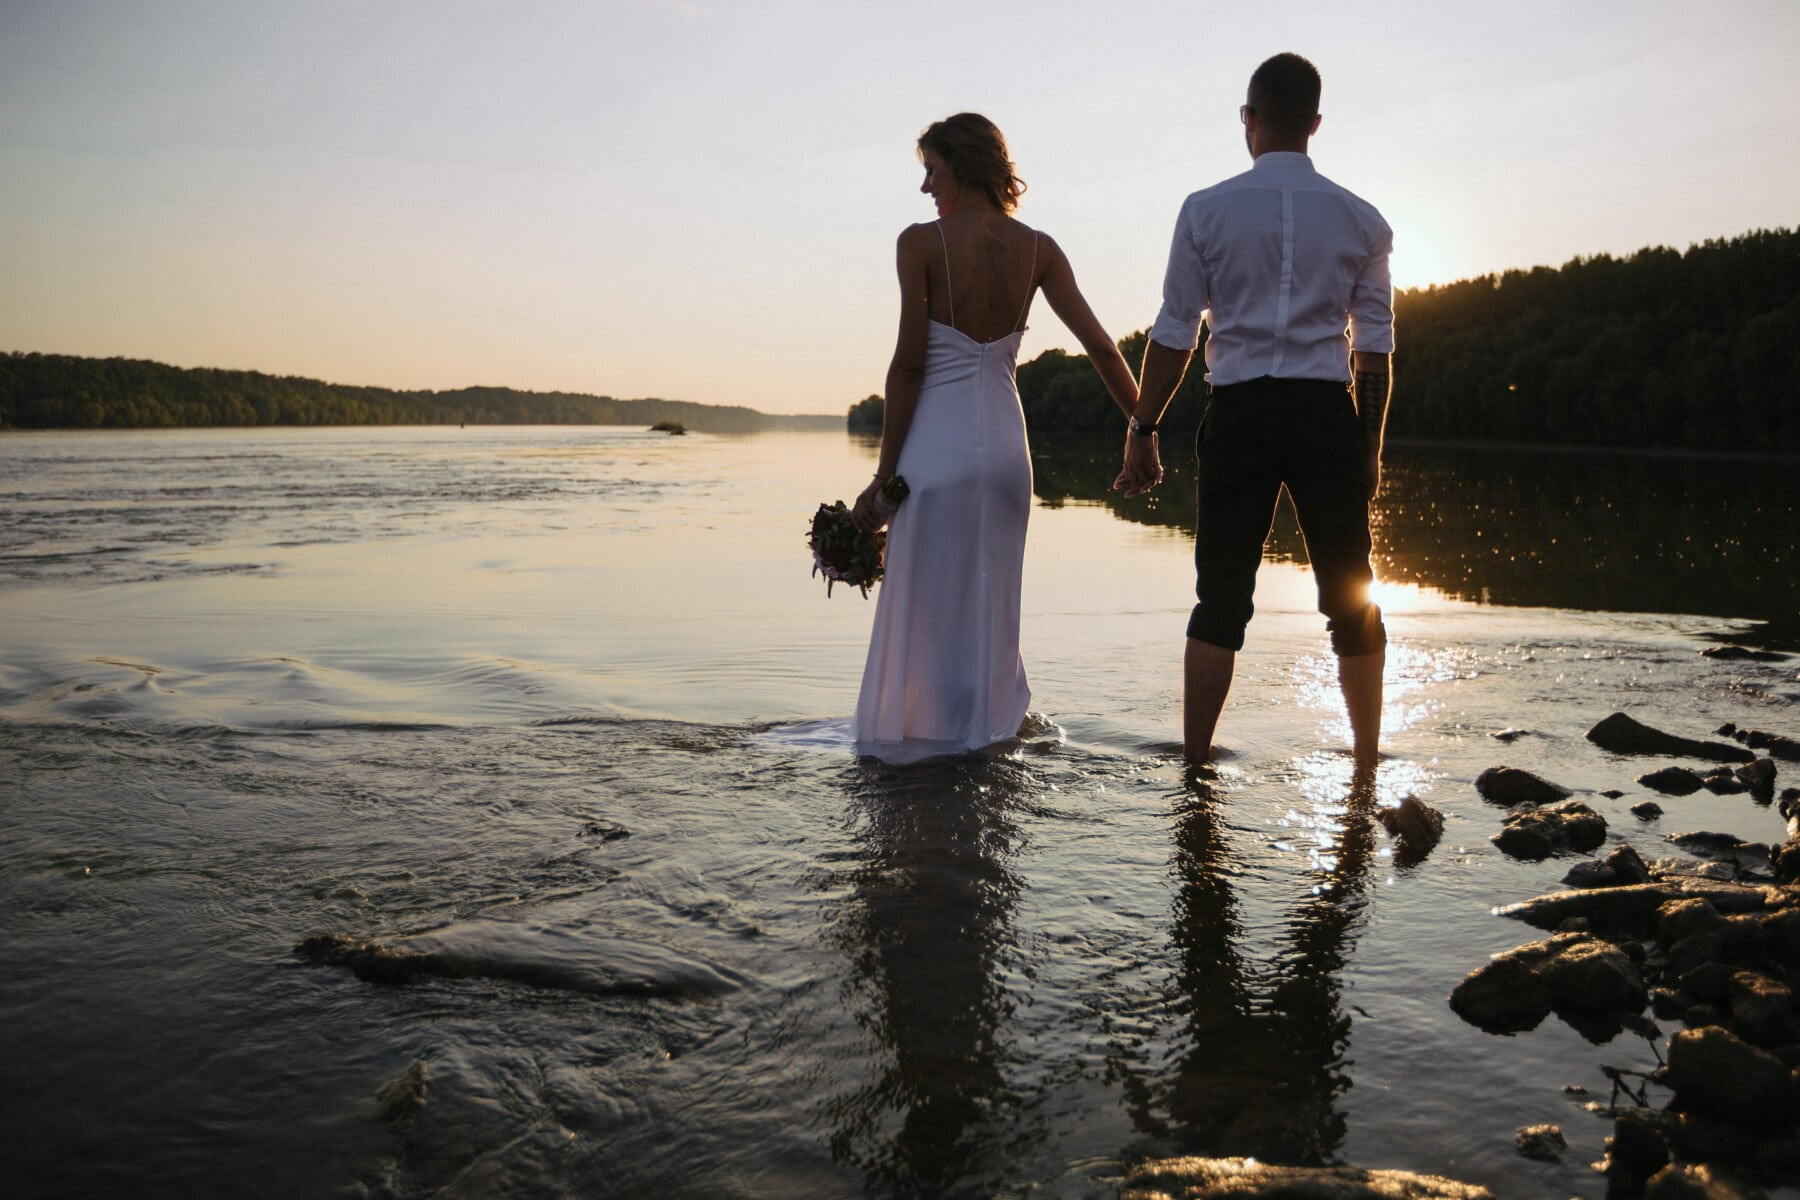 wife, holding hands, husband, young, just married, evening, sunset, panorama, riverbank, love